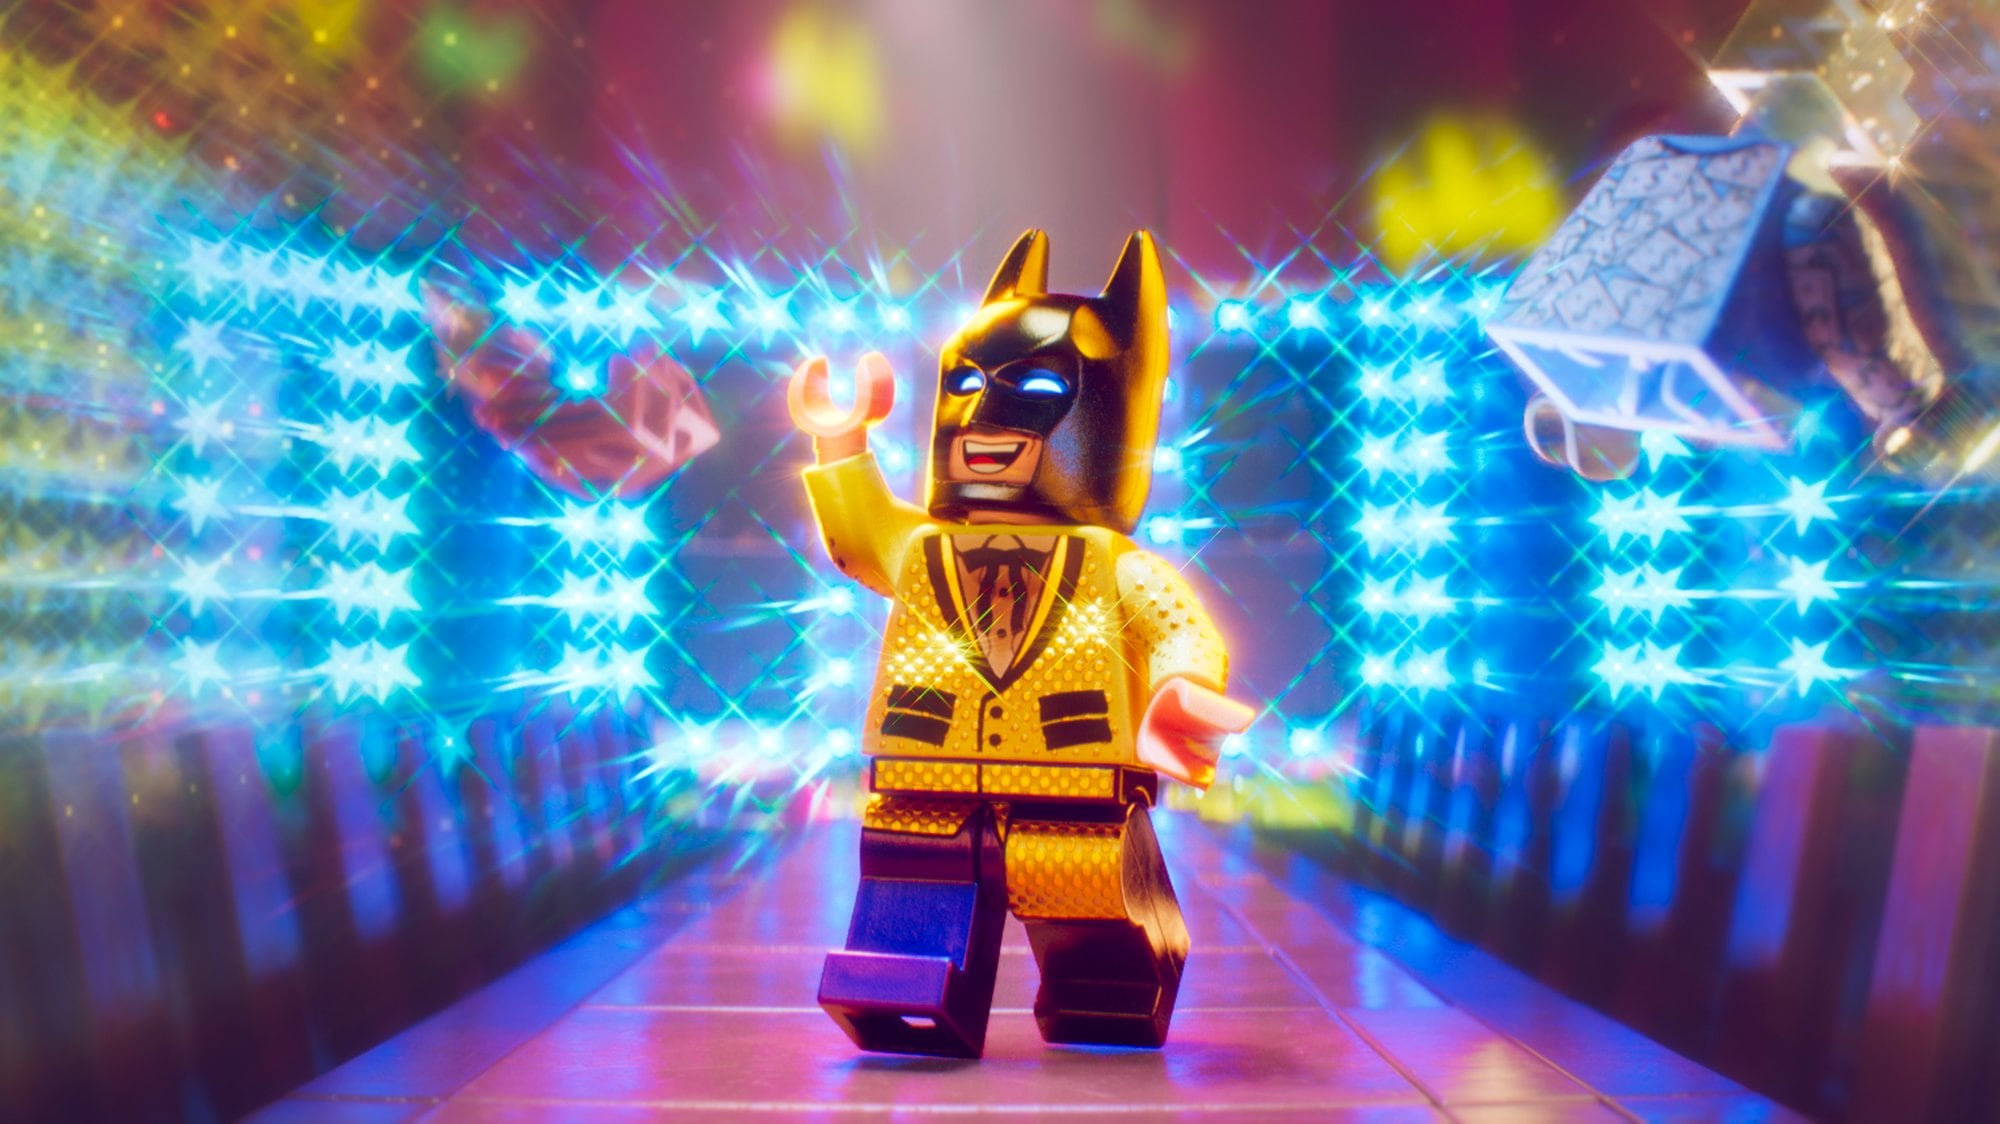 LEGO_BATMAN_MOVIE_ESTVODKITPHOTO_6_f6ff91f3